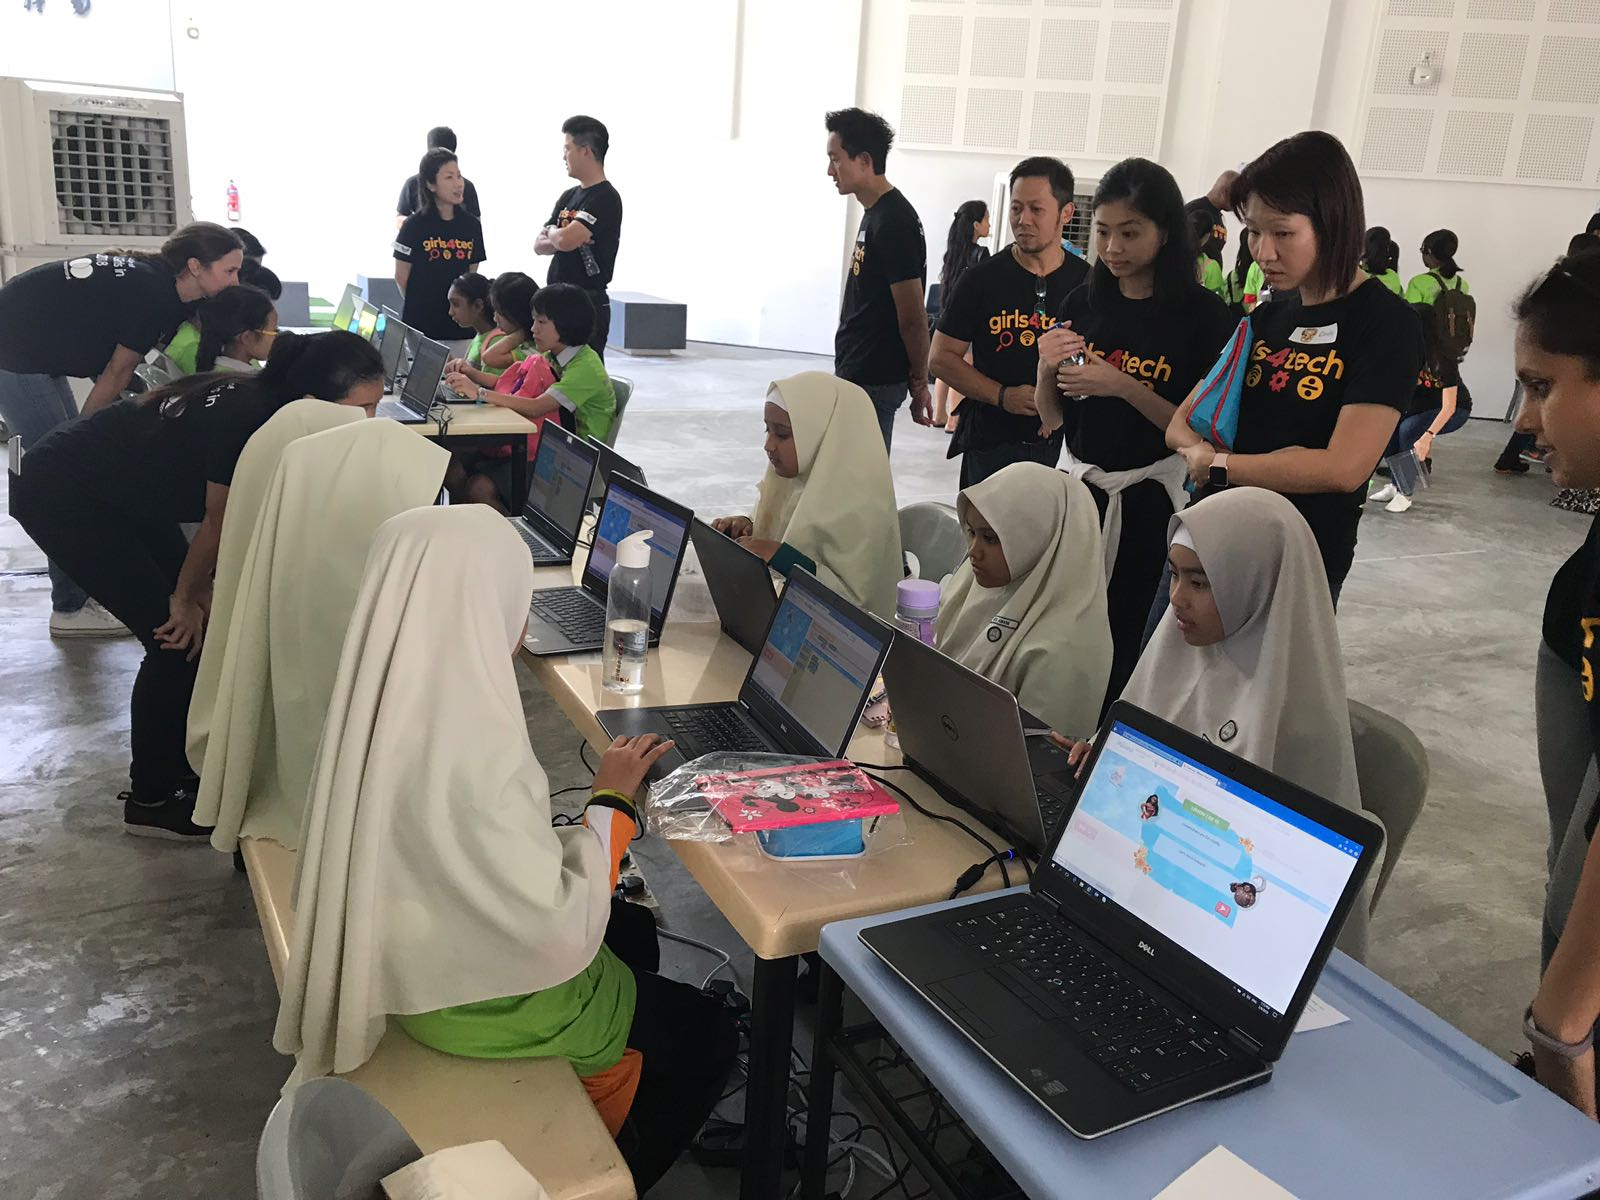 International Day of Women and Girls in Science 2018